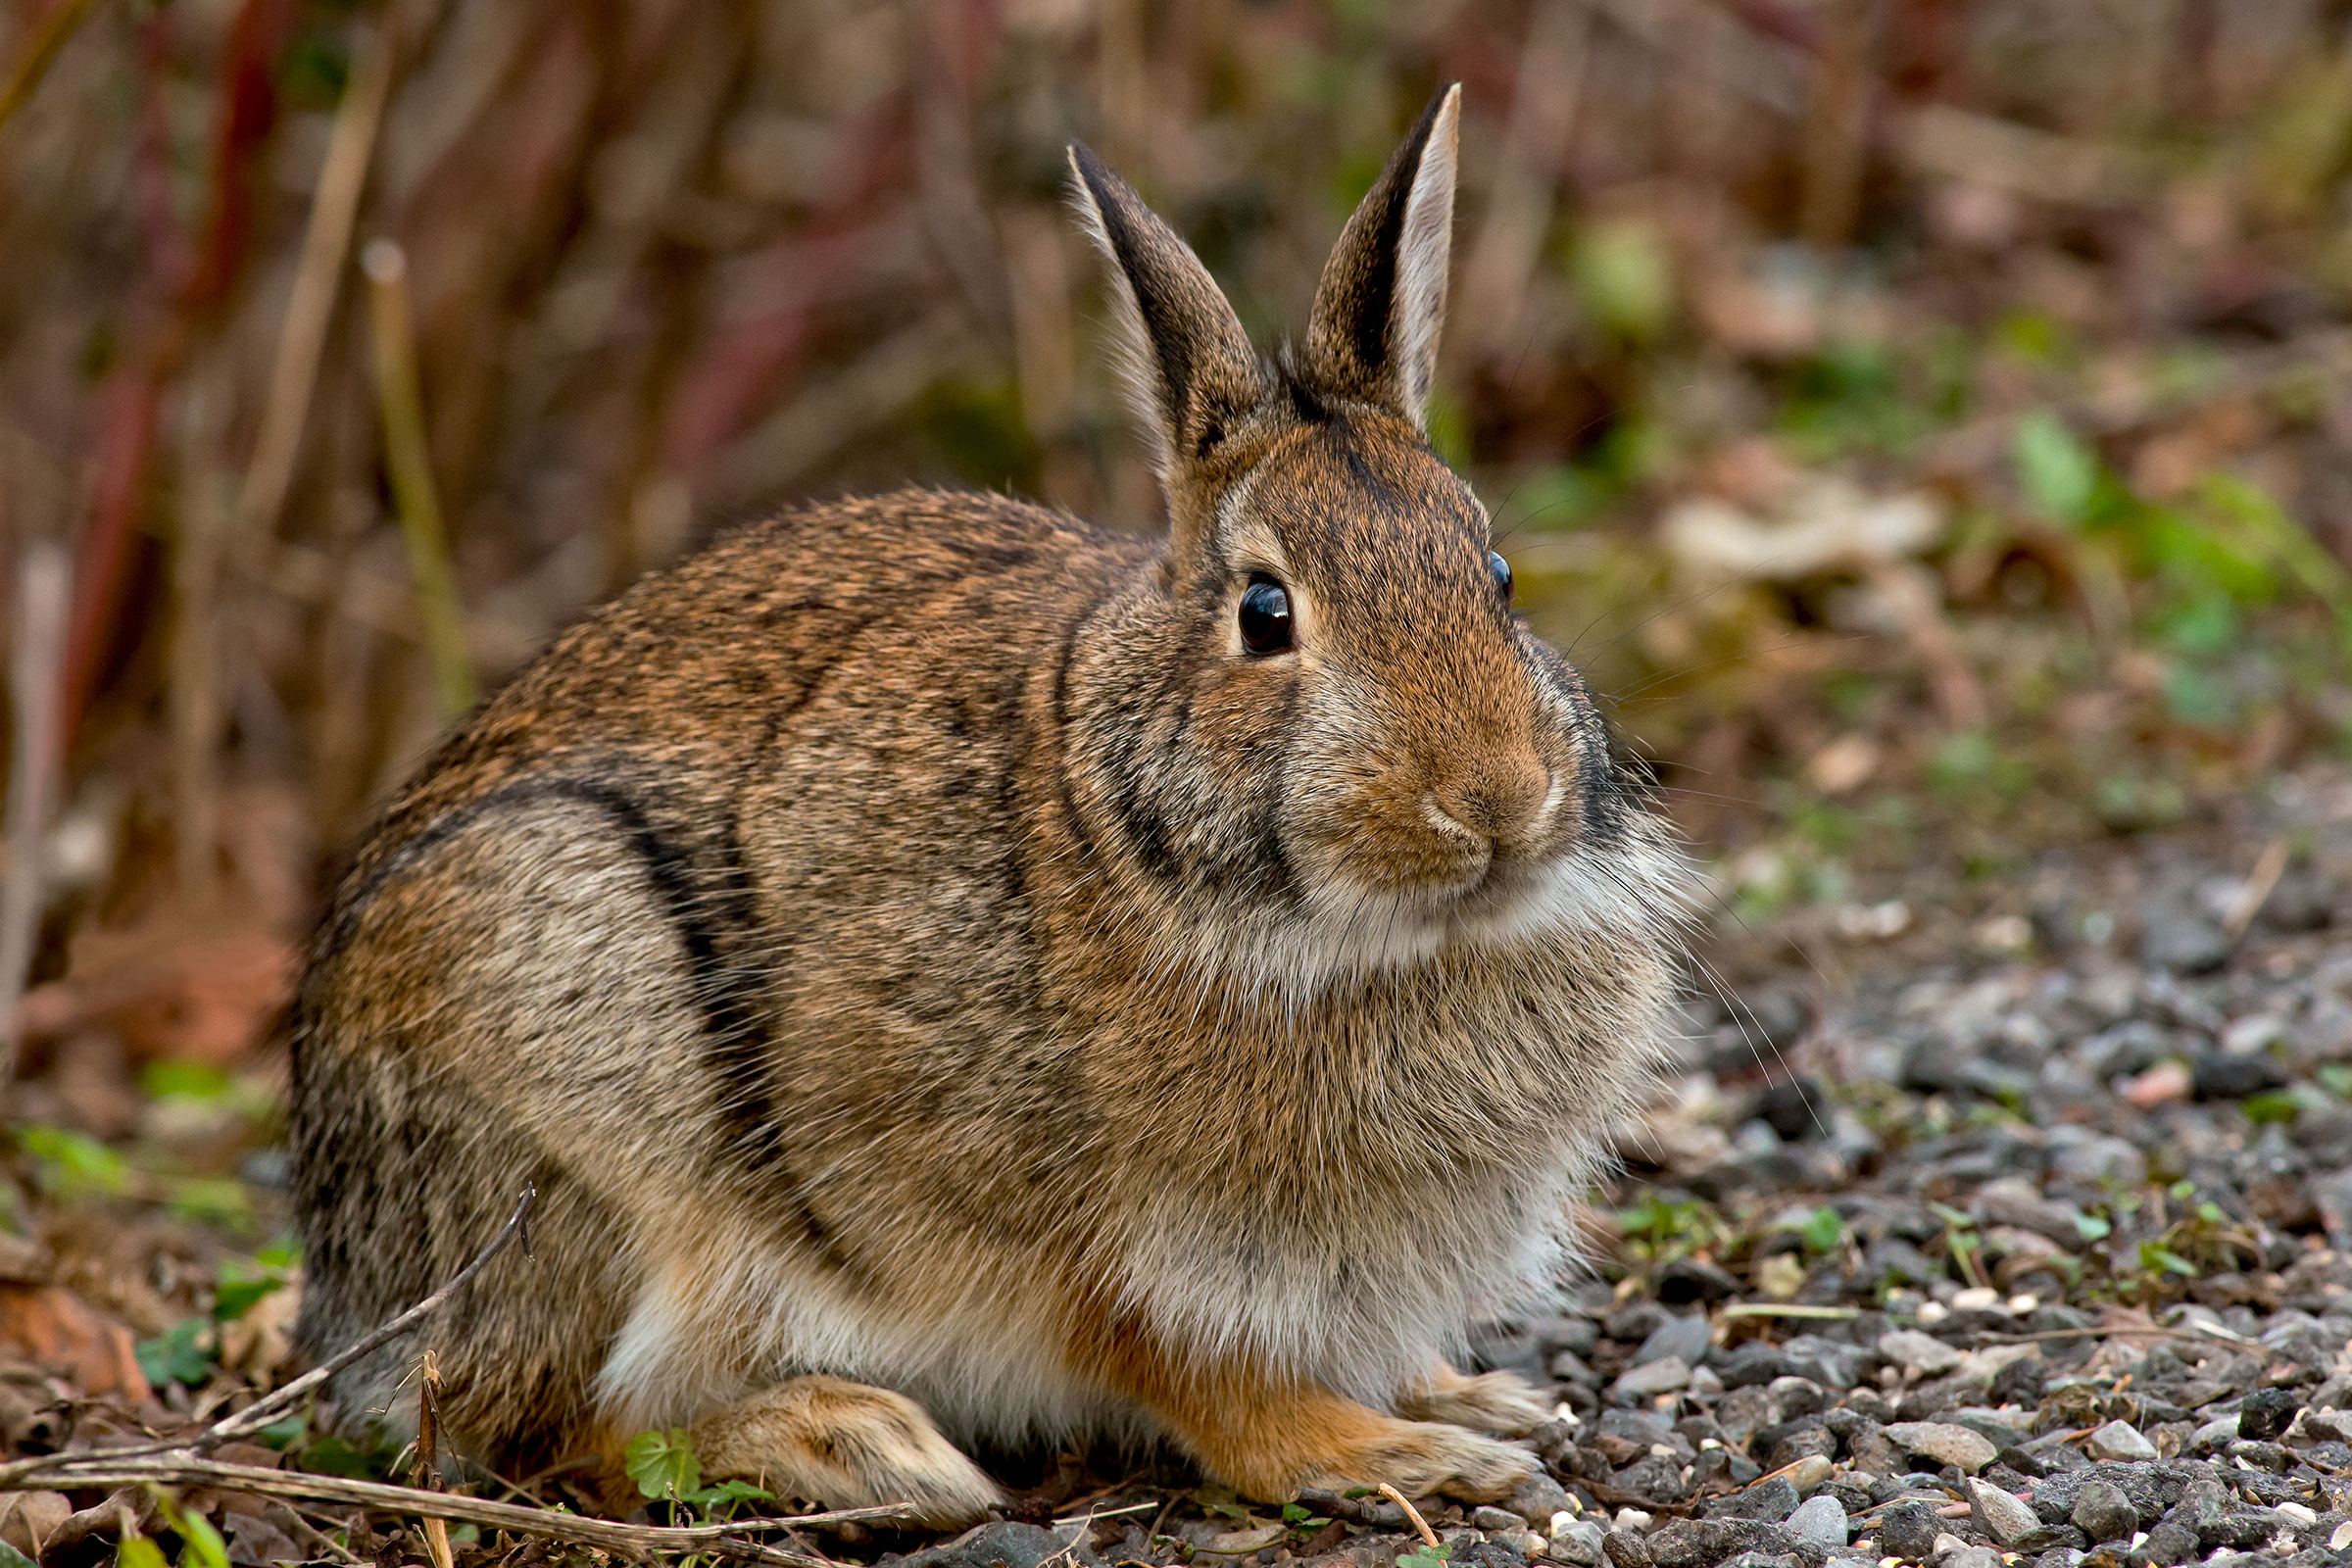 Eastern Cottontail. Paul Reeves Photography/iStock